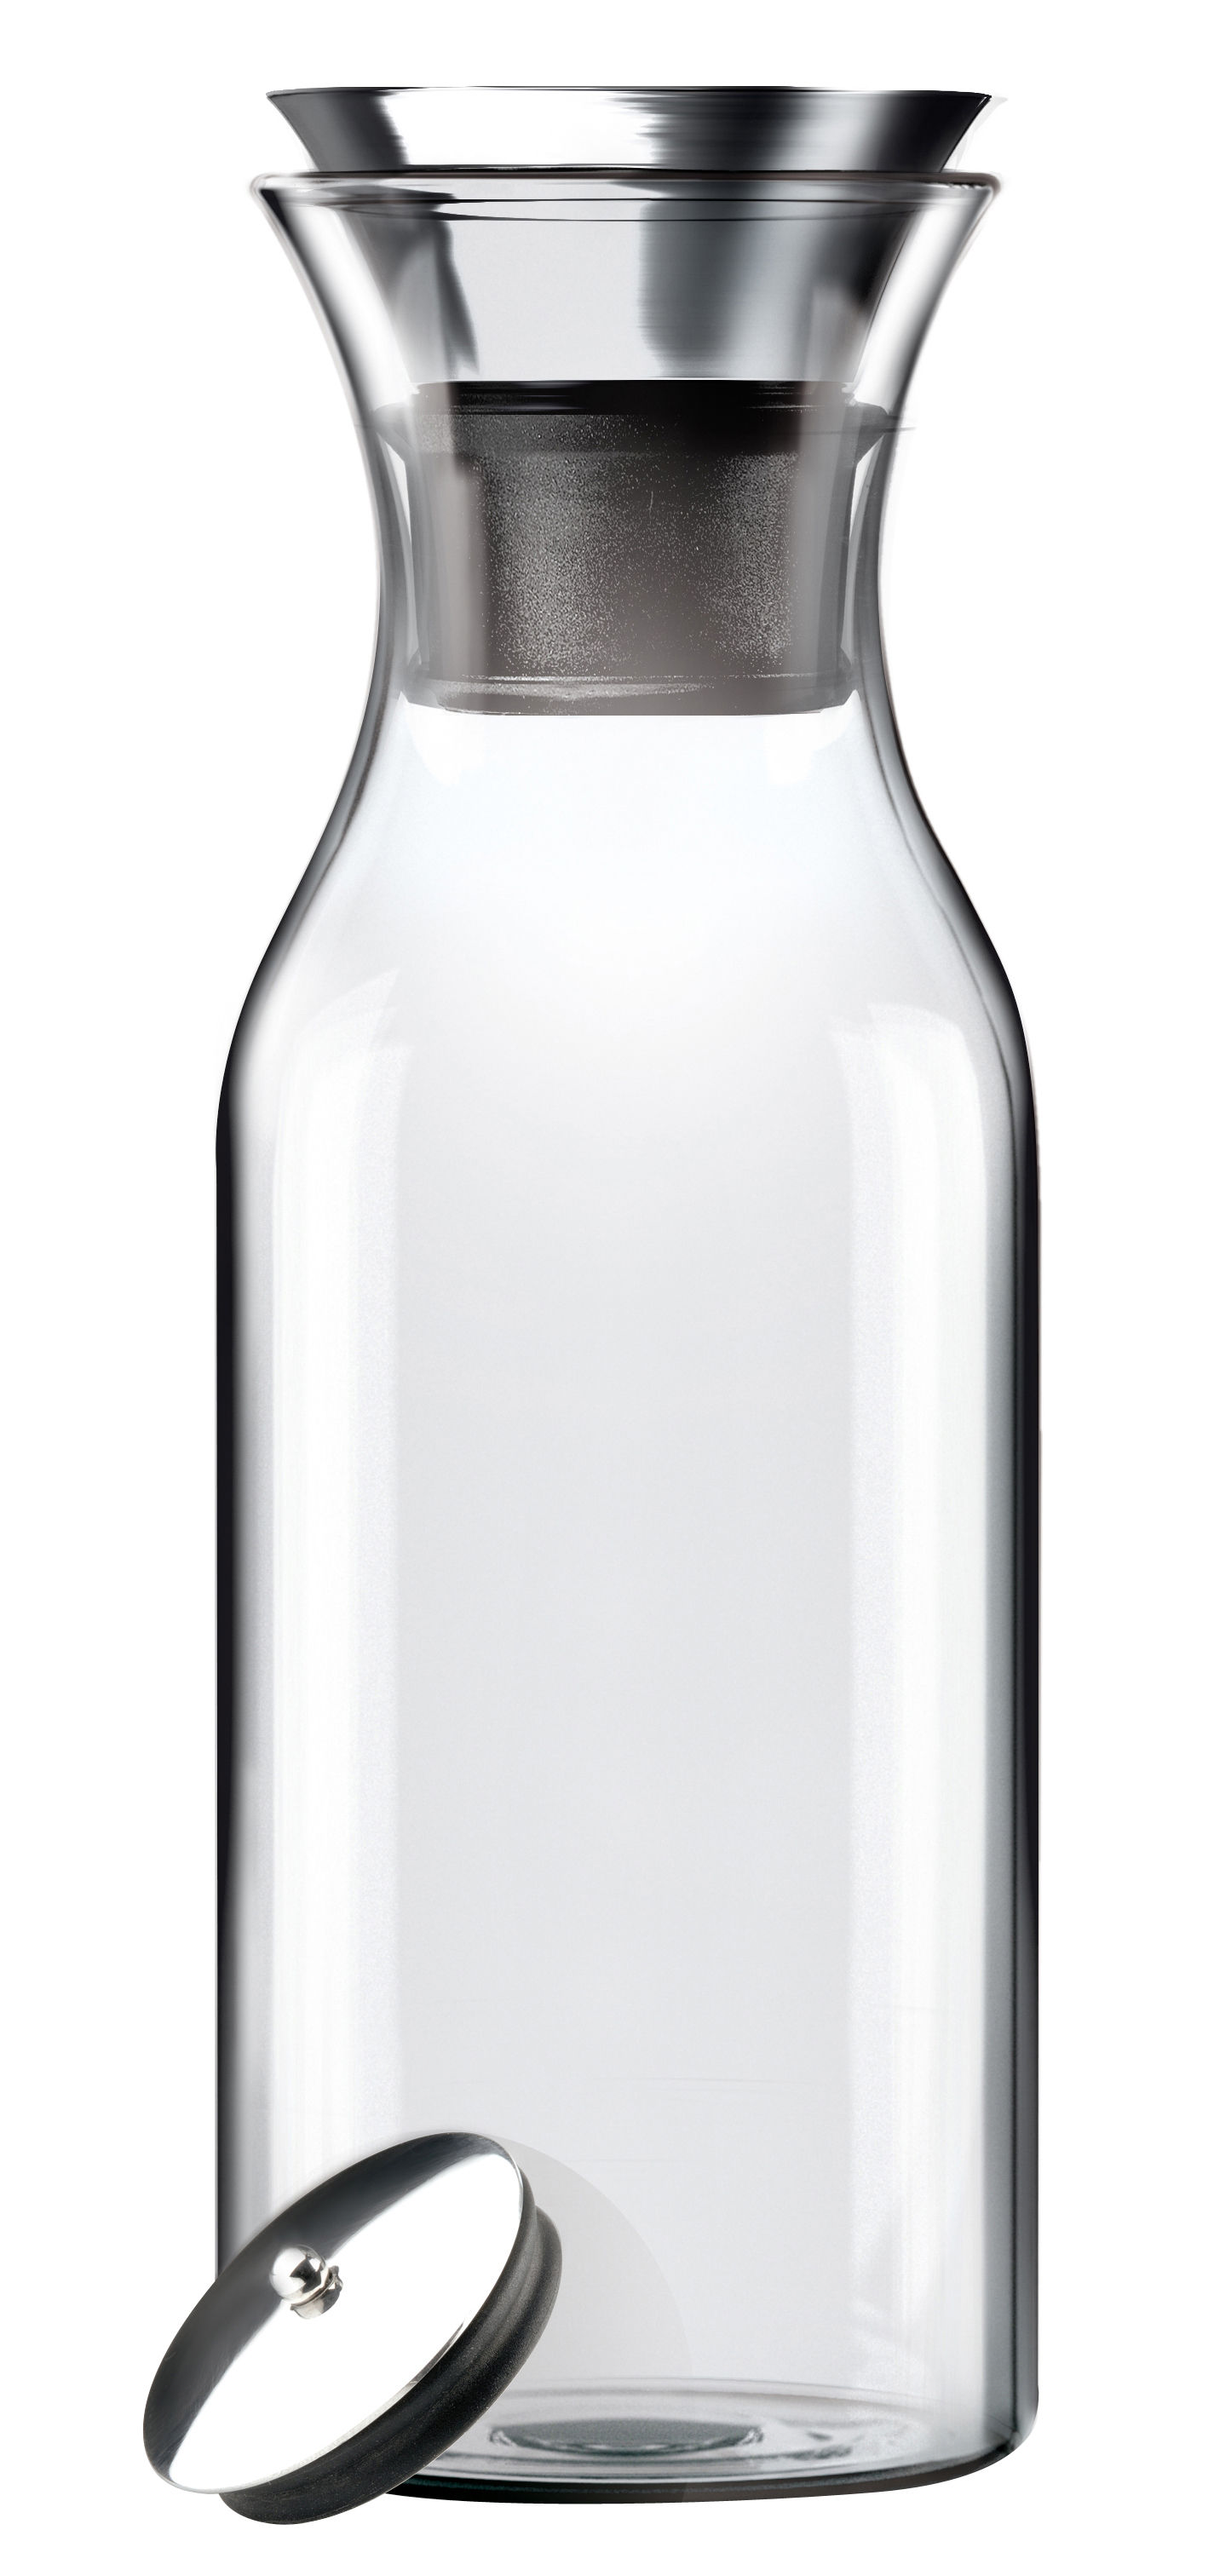 Tableware - Water Carafes & Wine Decanters - Stoppe-goutte Carafe - 1 L by Eva Solo - Clear - Glass, Silicone, Stainless steel